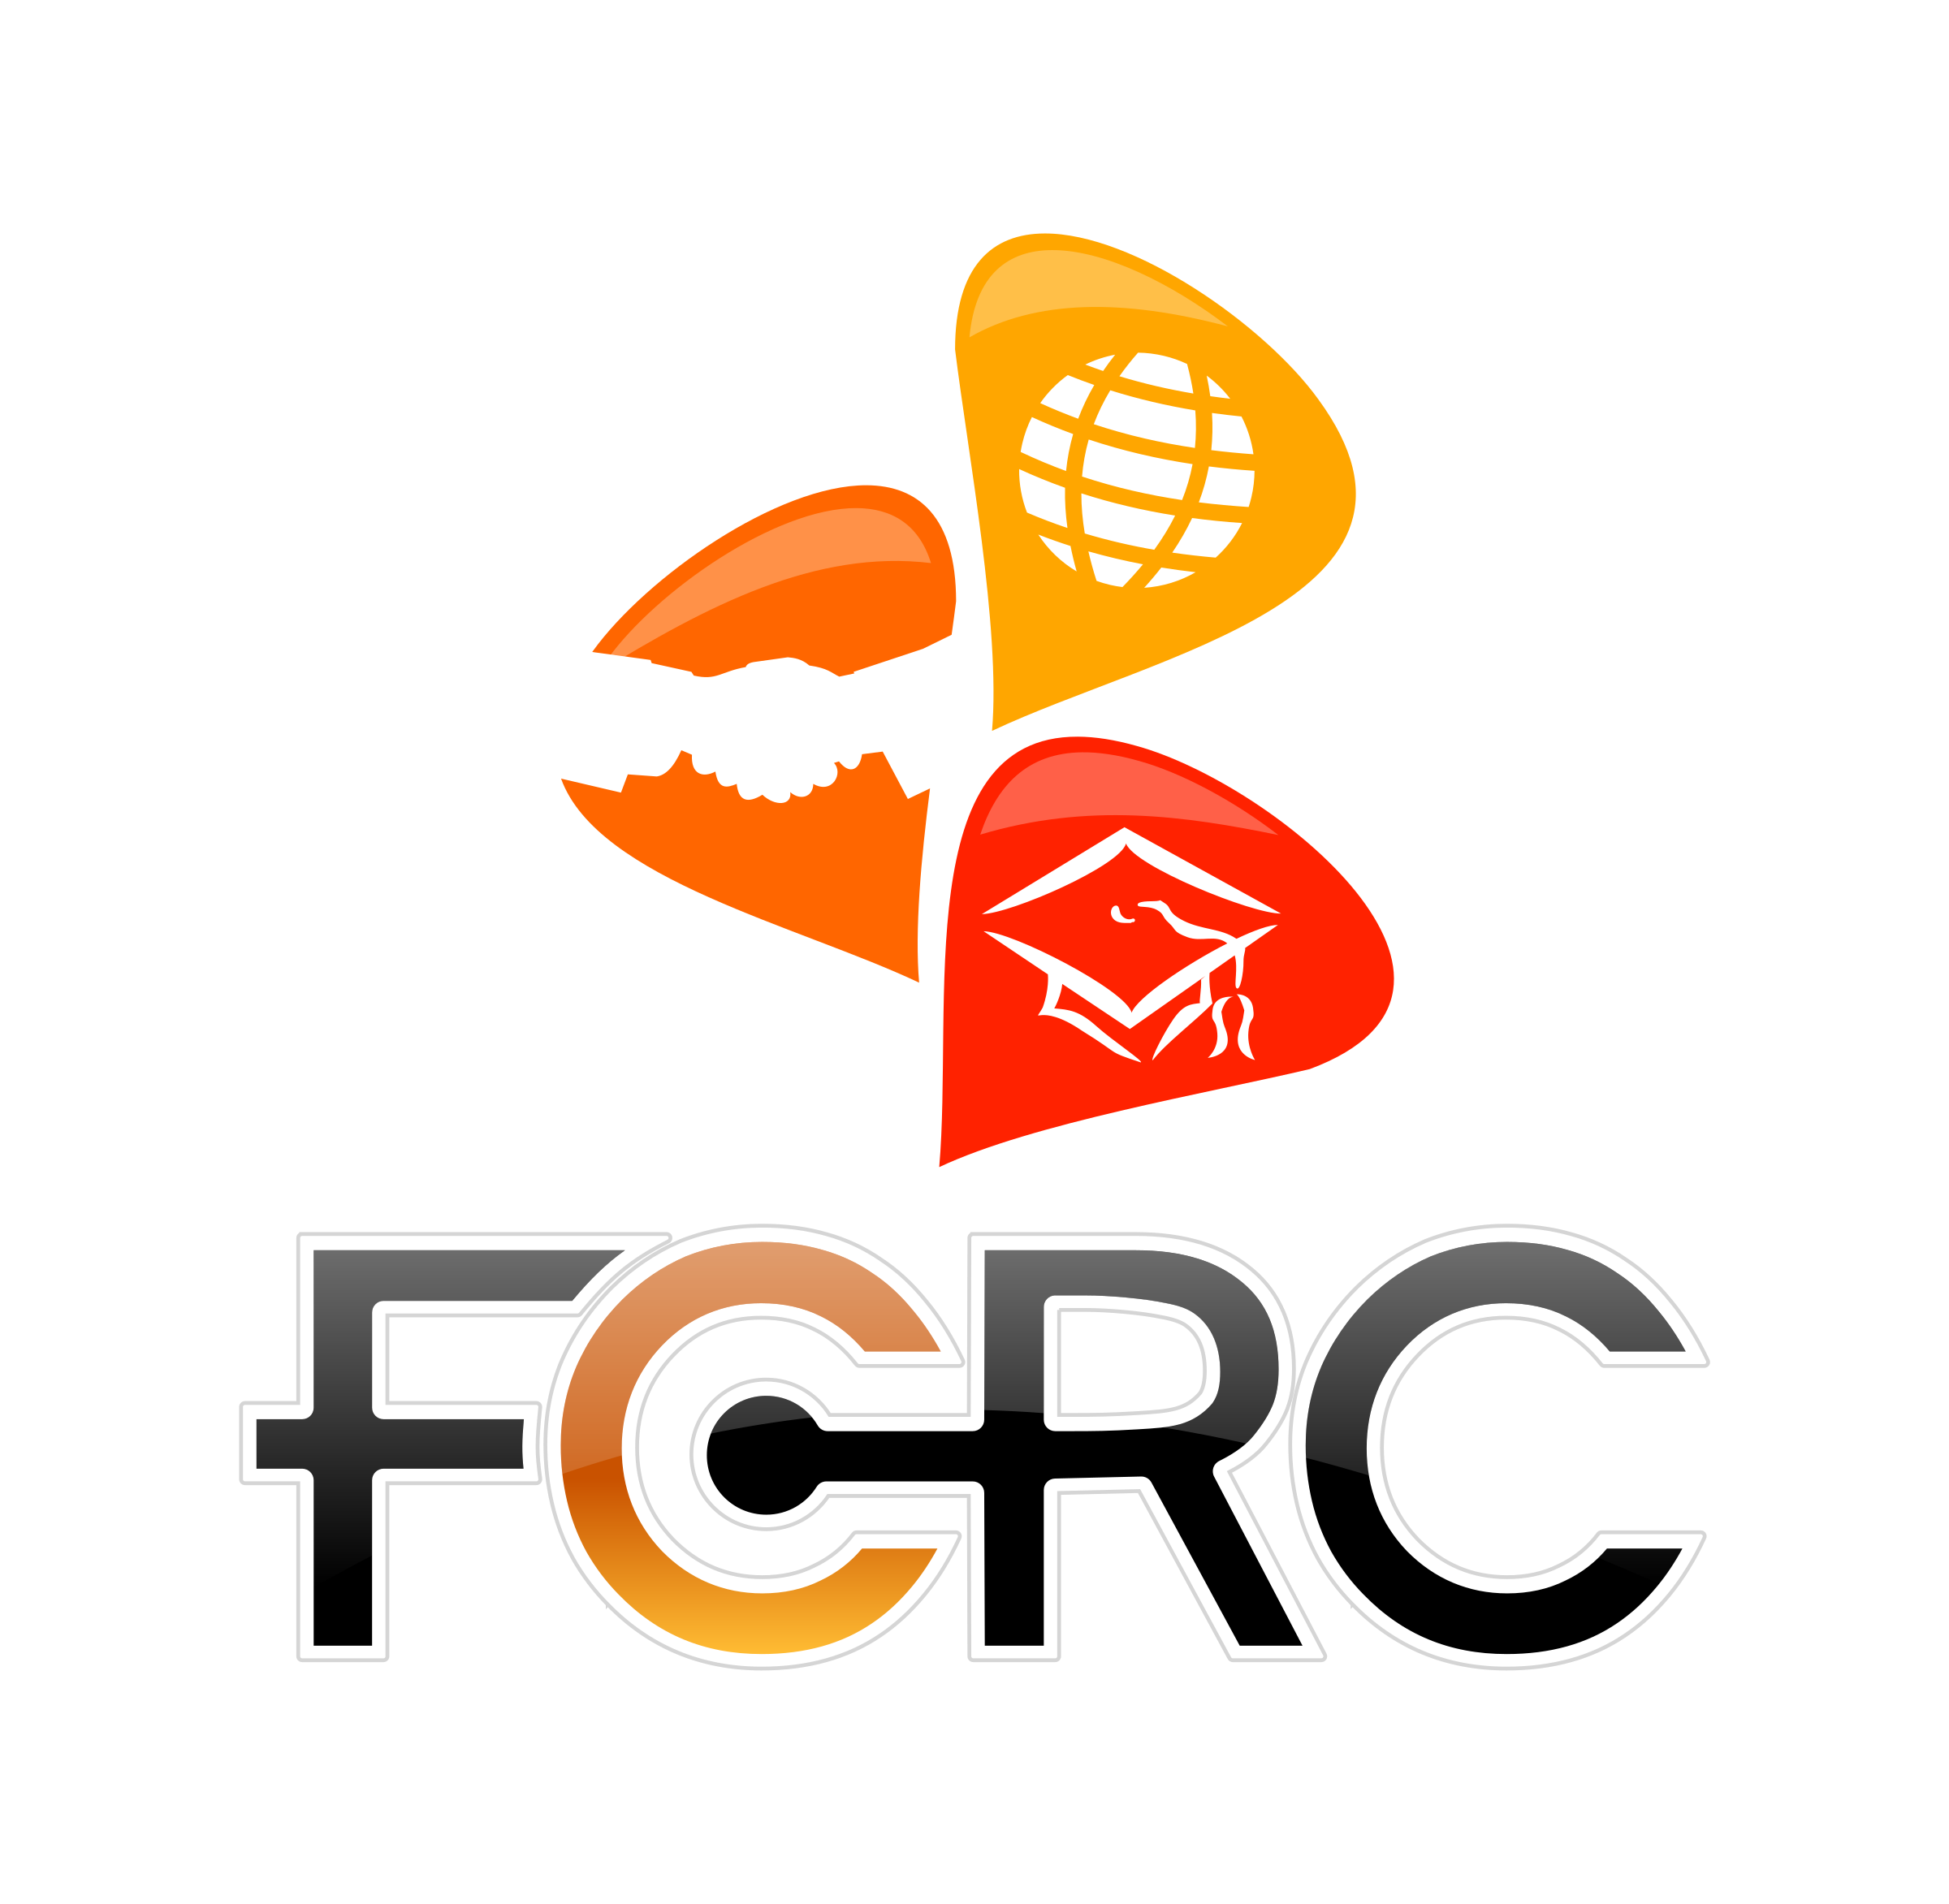 FCRC speech bubble logo 2 by timeth